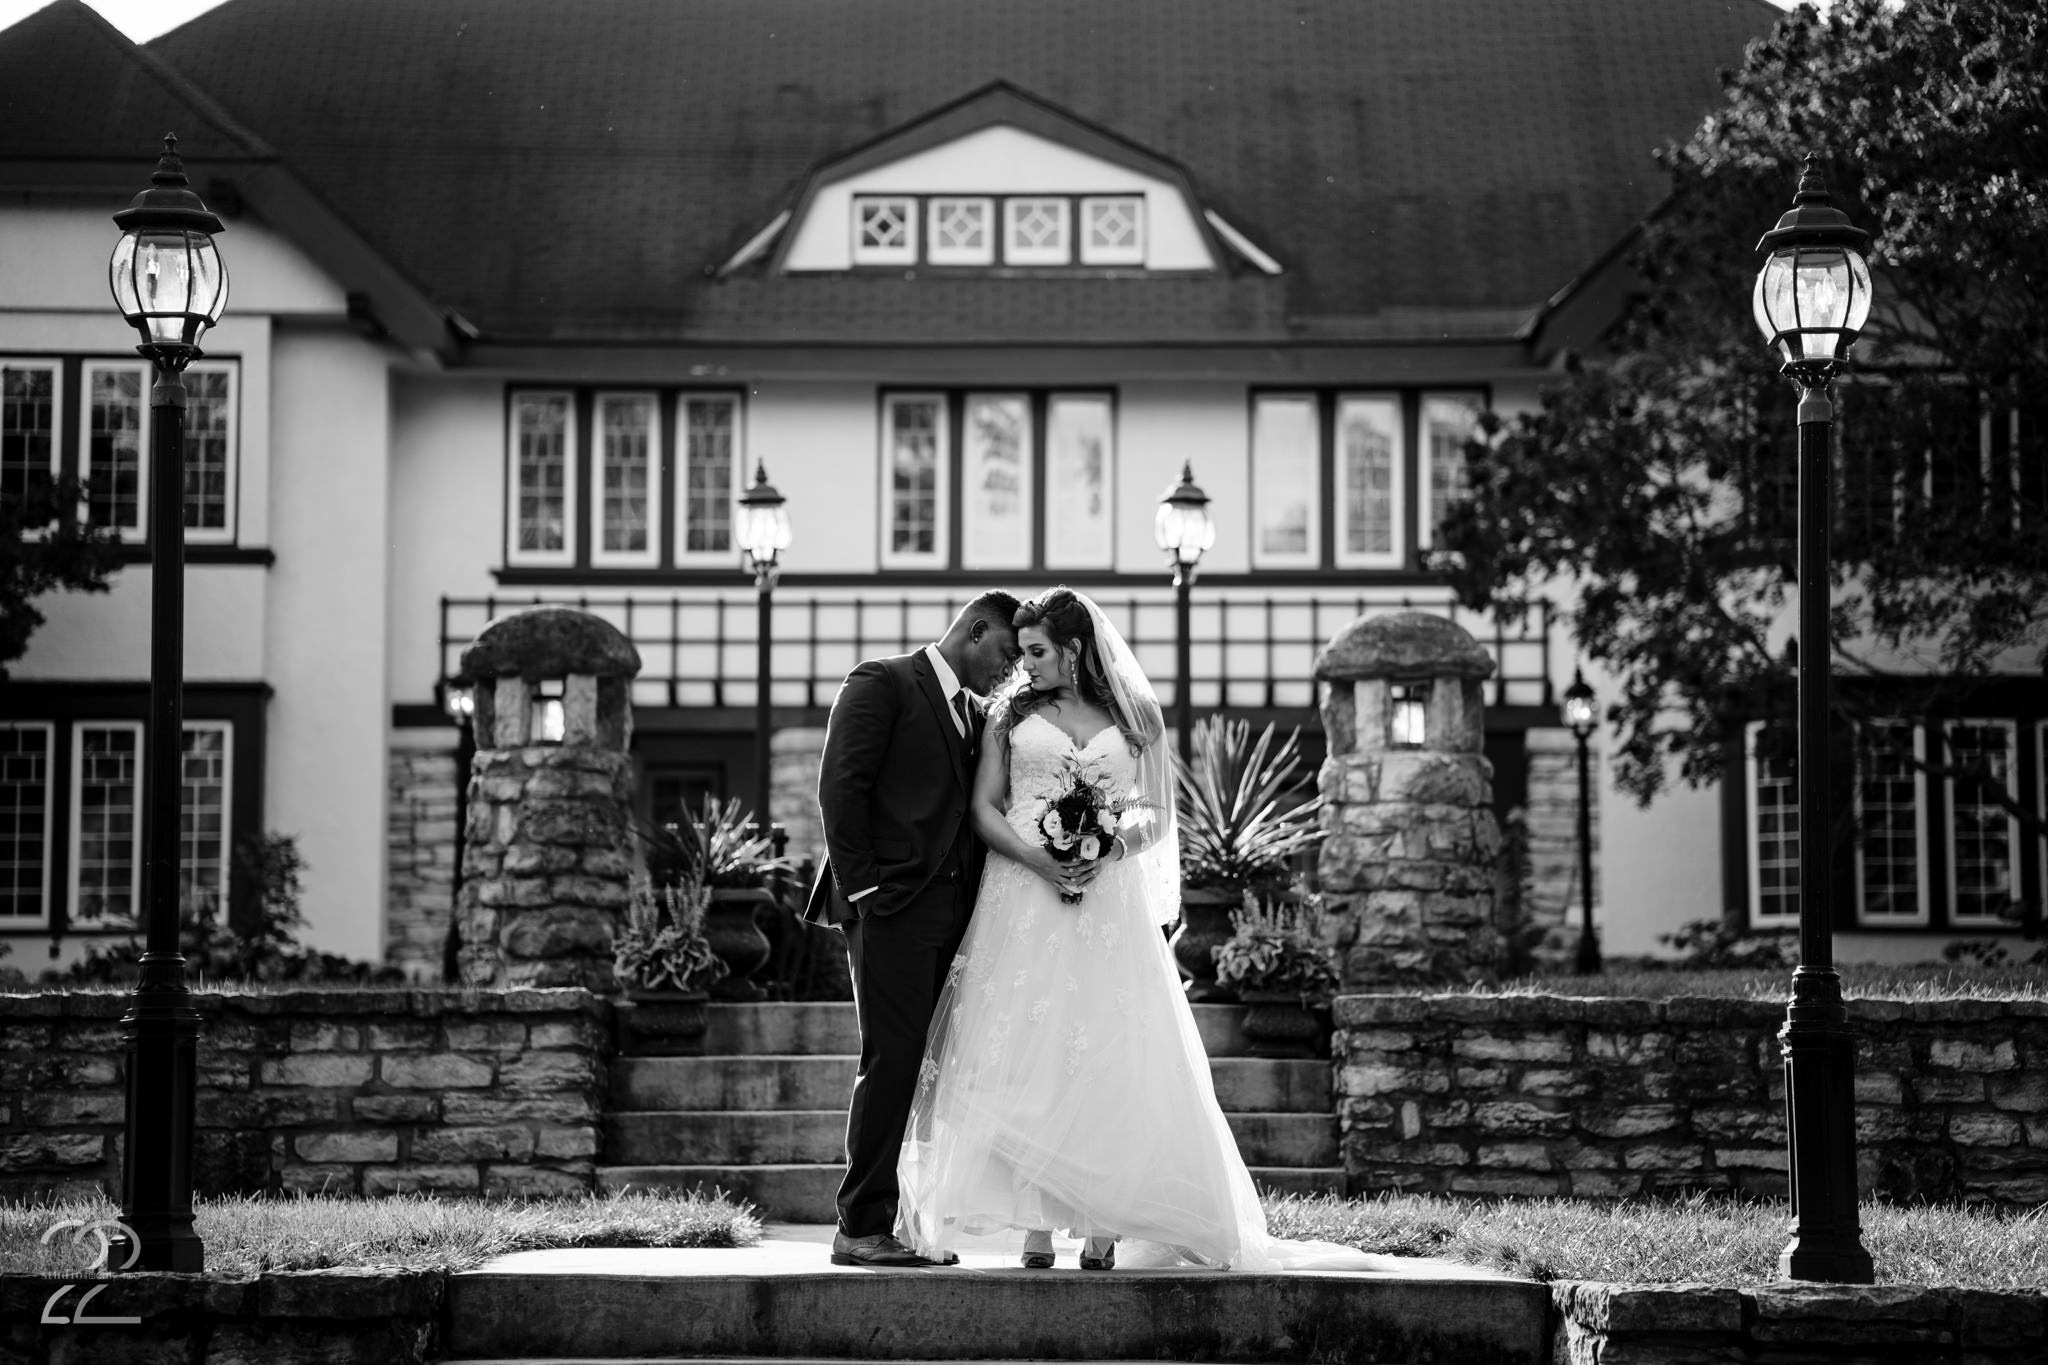 Round Barn Wedding - Orrmont Estate - Studio 22 Photography